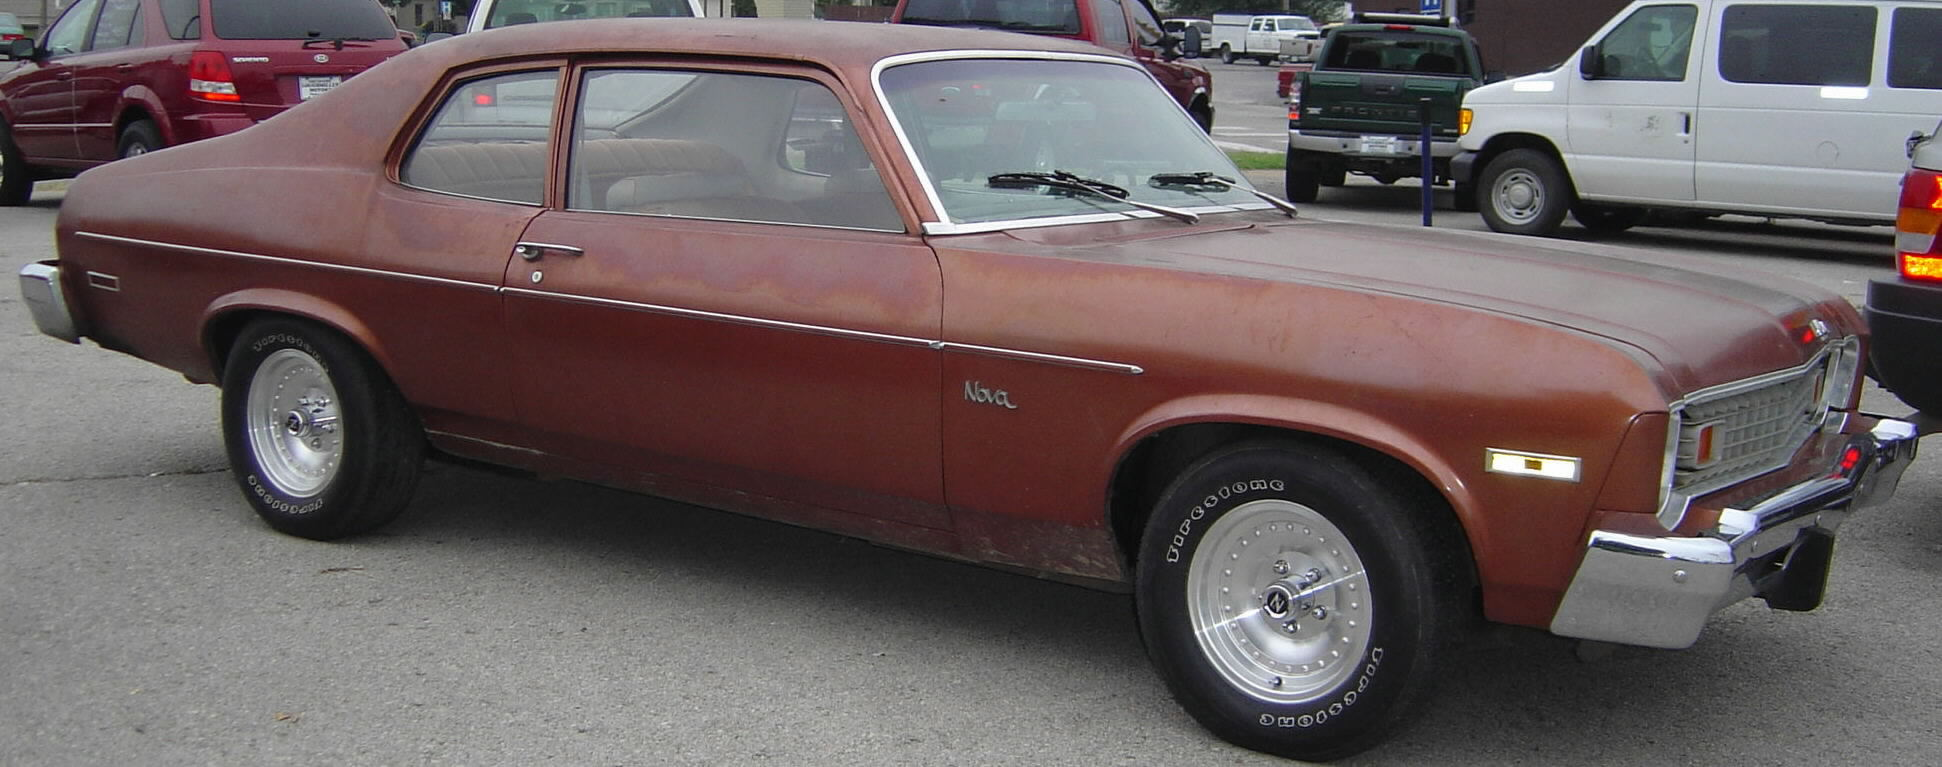 CHEVROLET NOVA brown